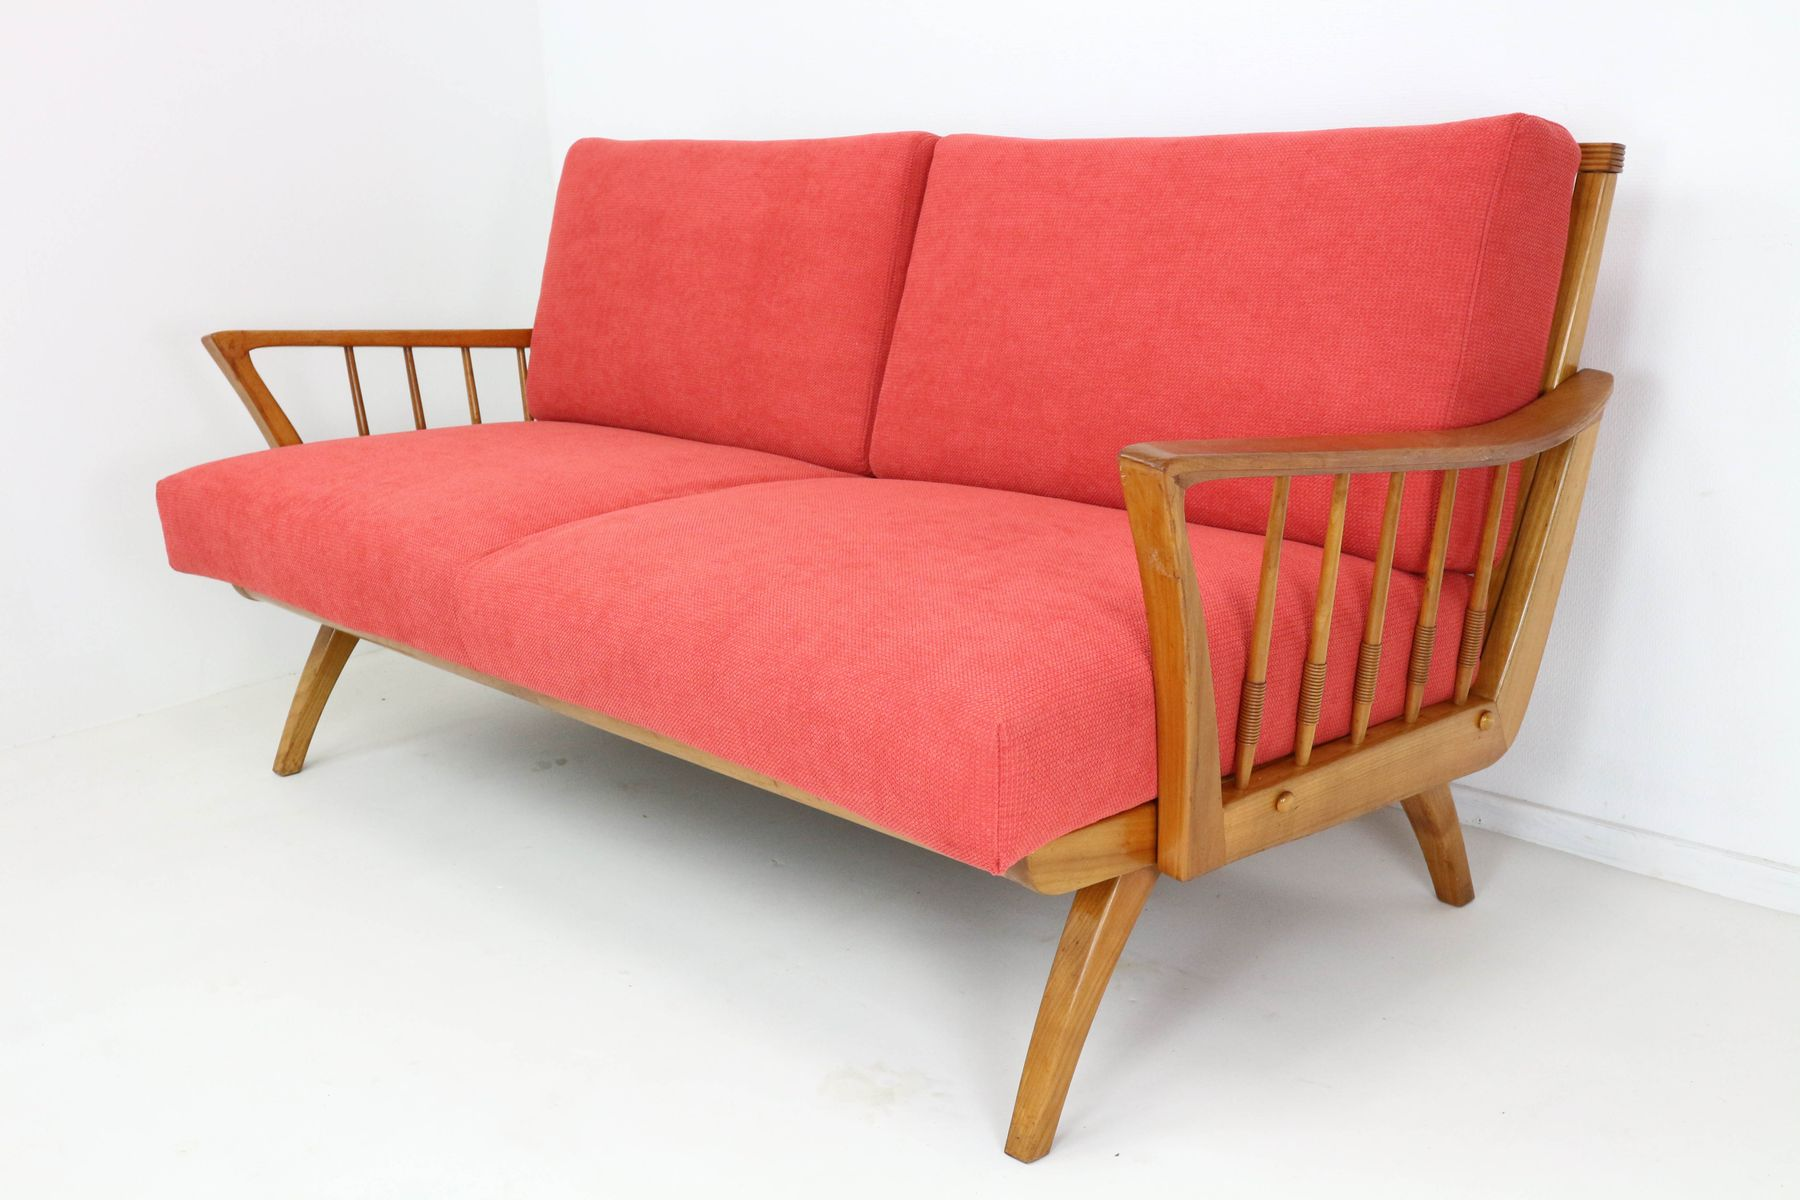 antimott sofa or daybed from walter knoll 1950s for sale. Black Bedroom Furniture Sets. Home Design Ideas